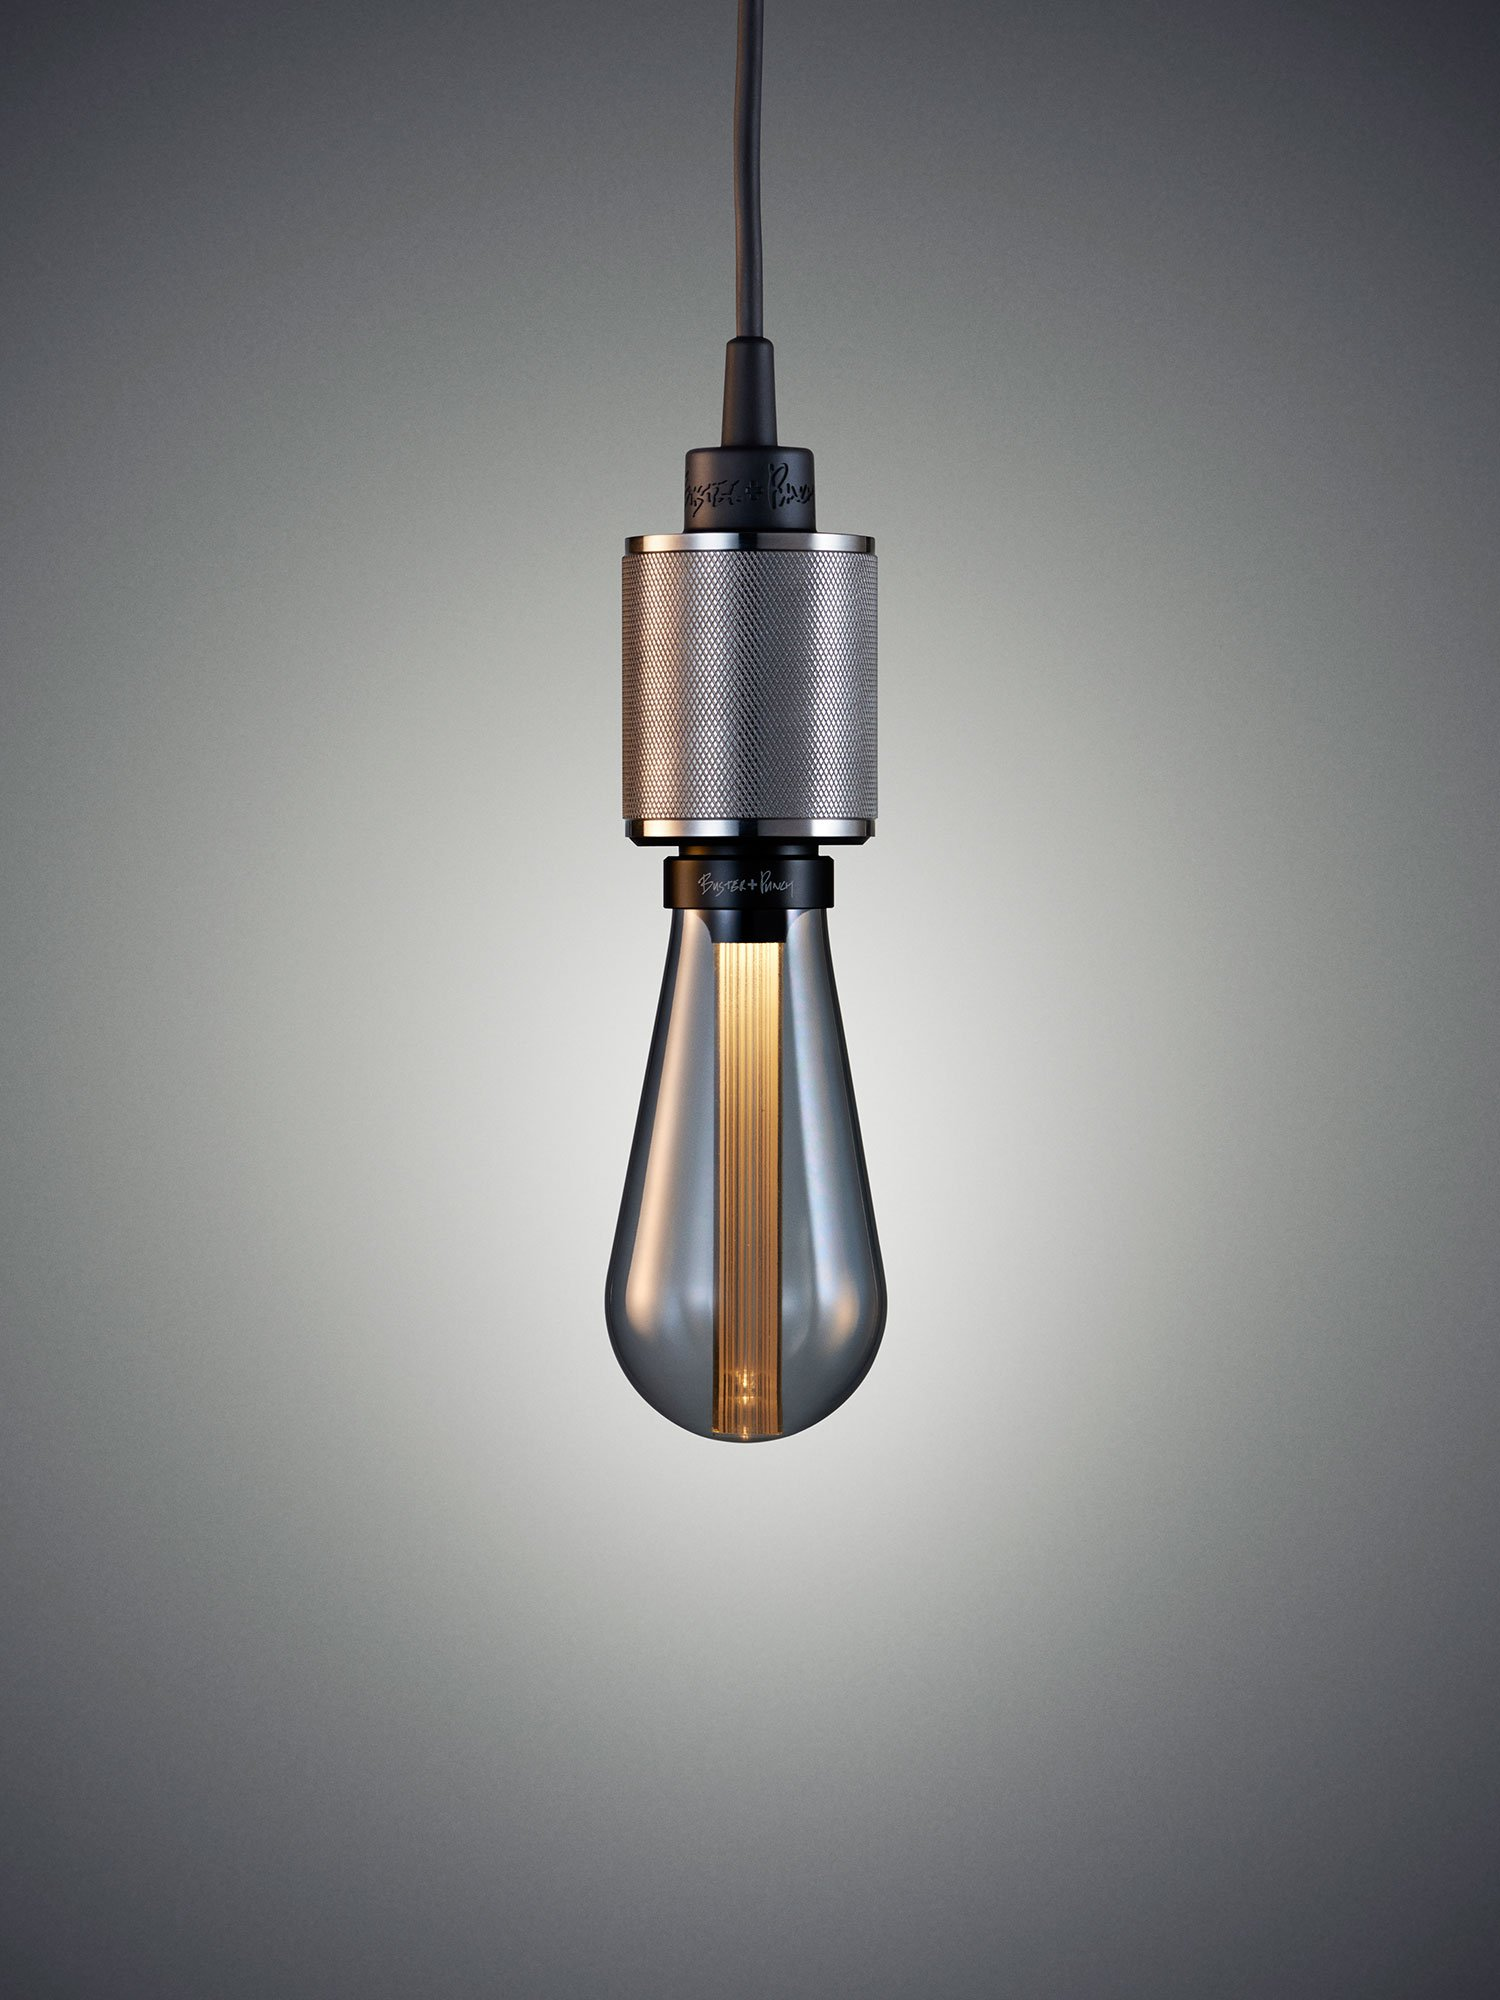 buster-punch-unveils-the-worlds-first-designer-led-bulb-7